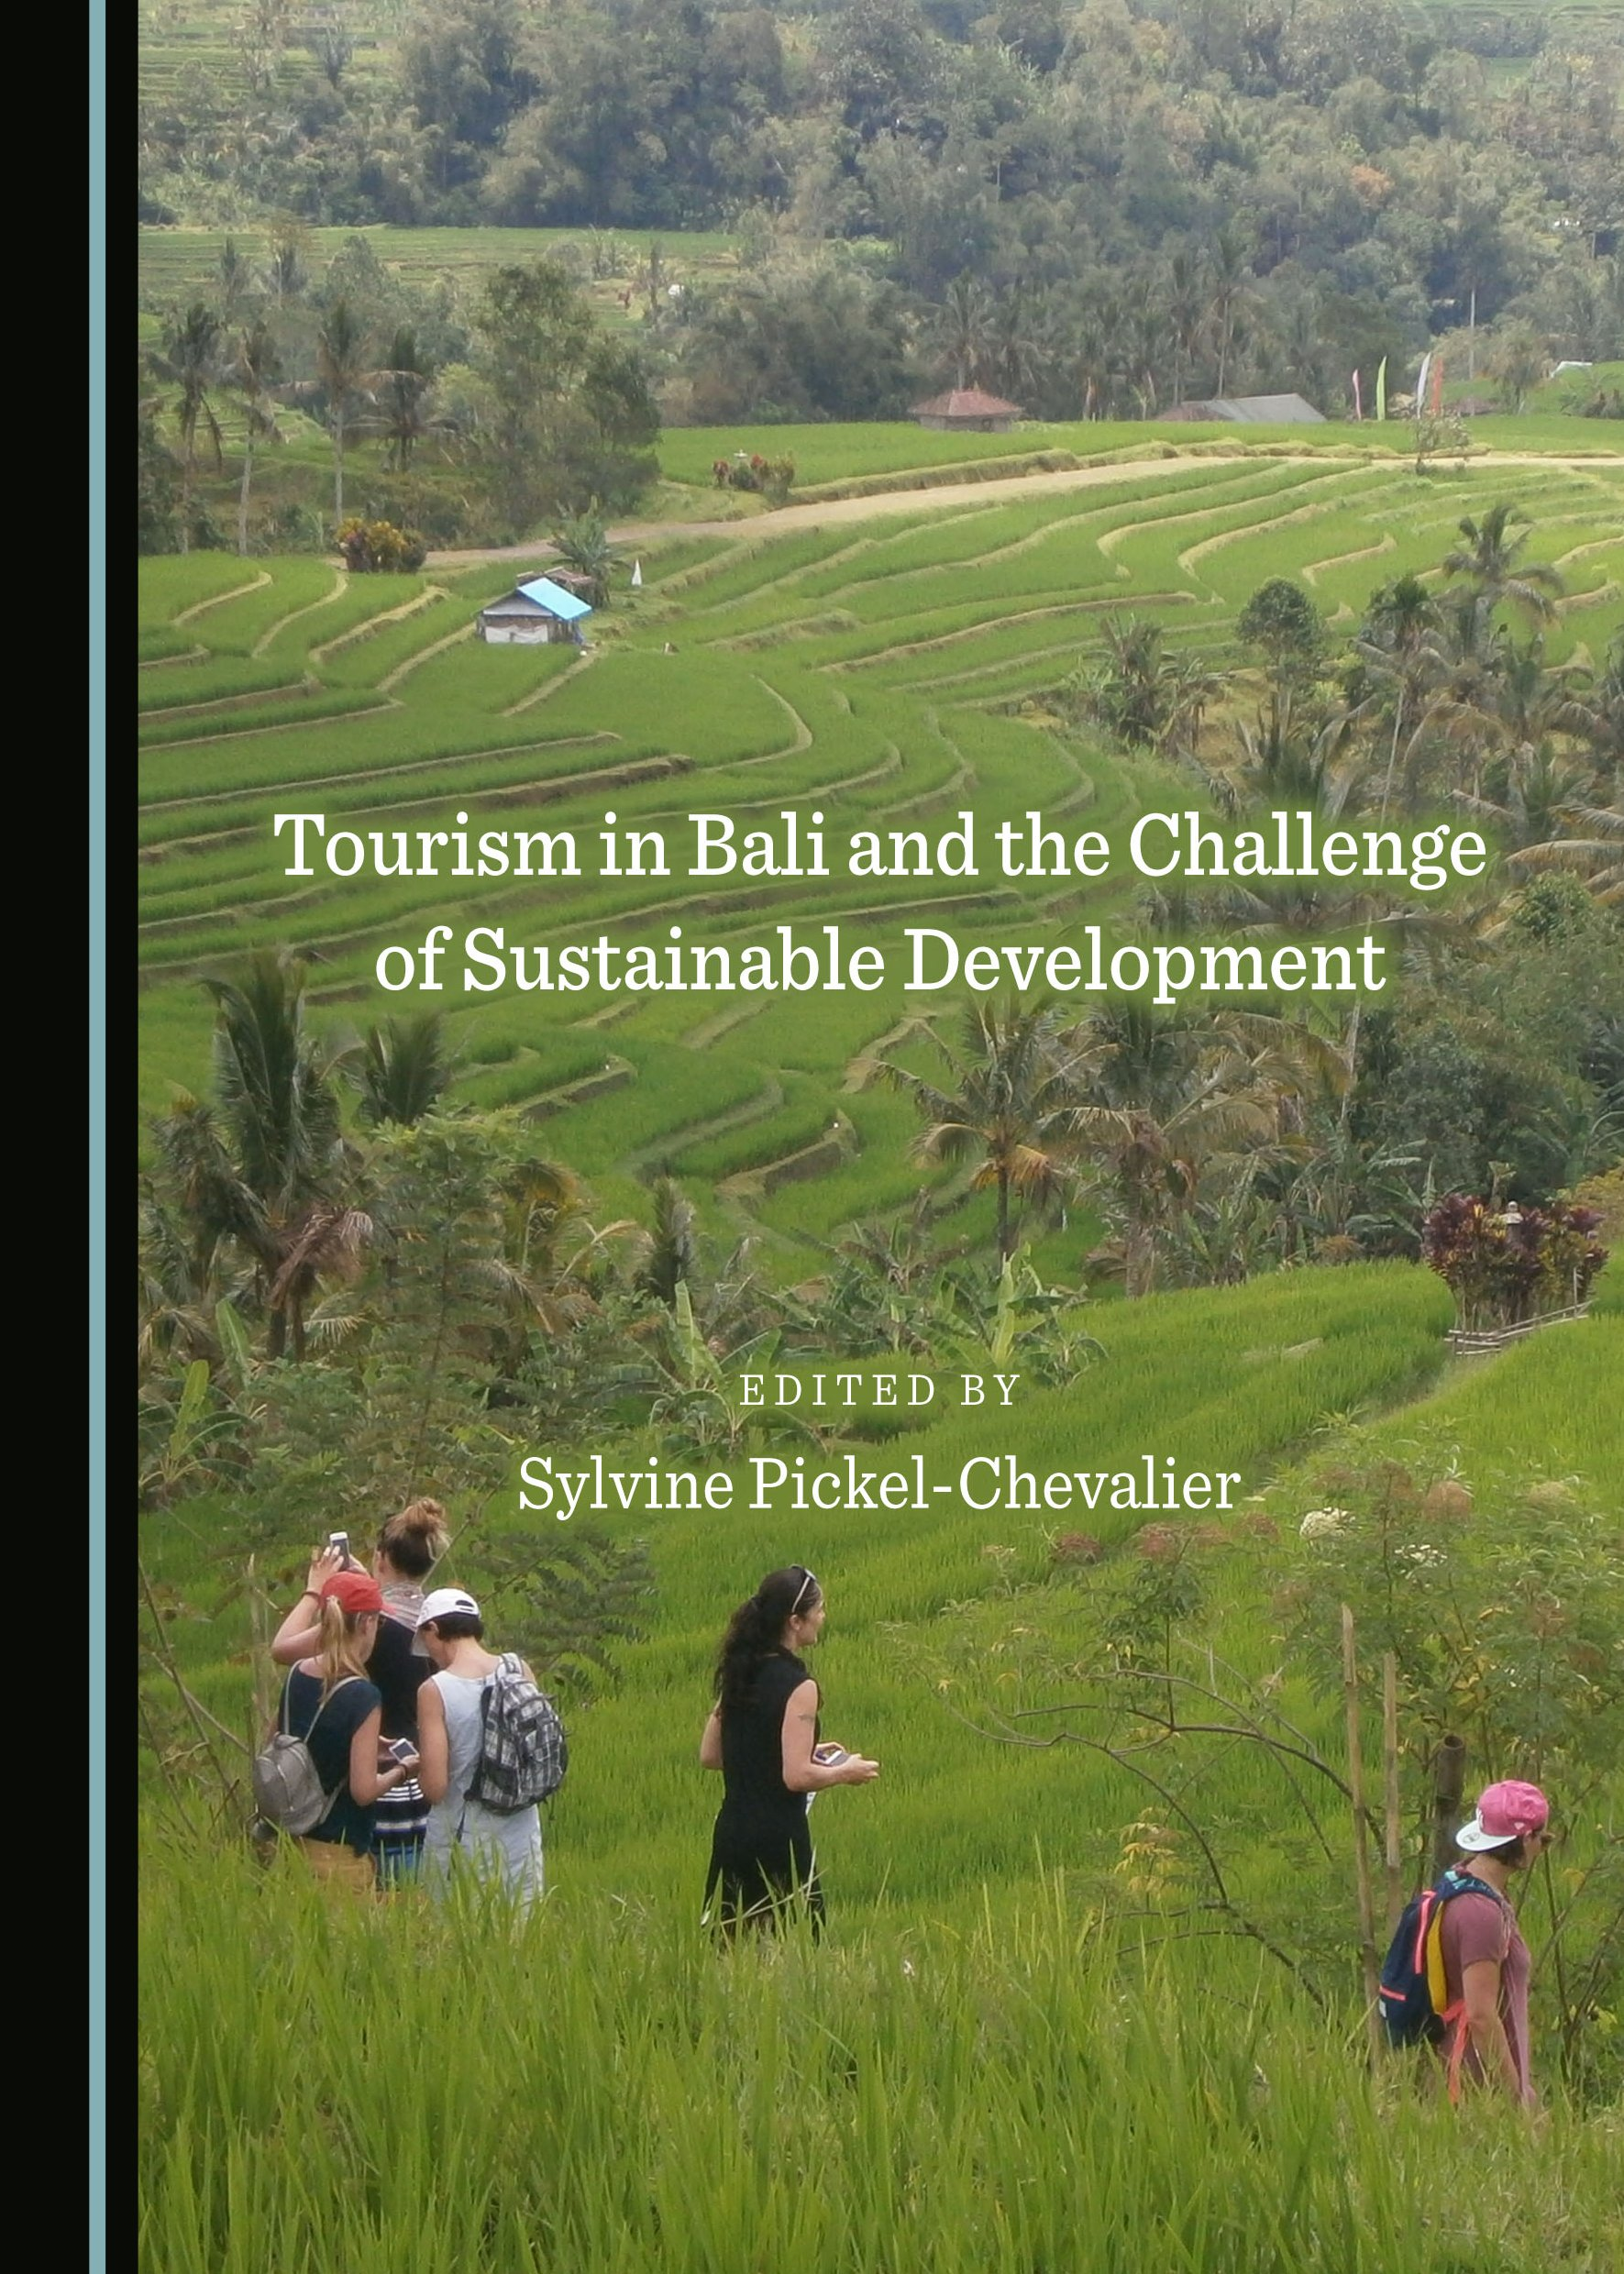 Tourism in Bali and the Challenge of Sustainable Development